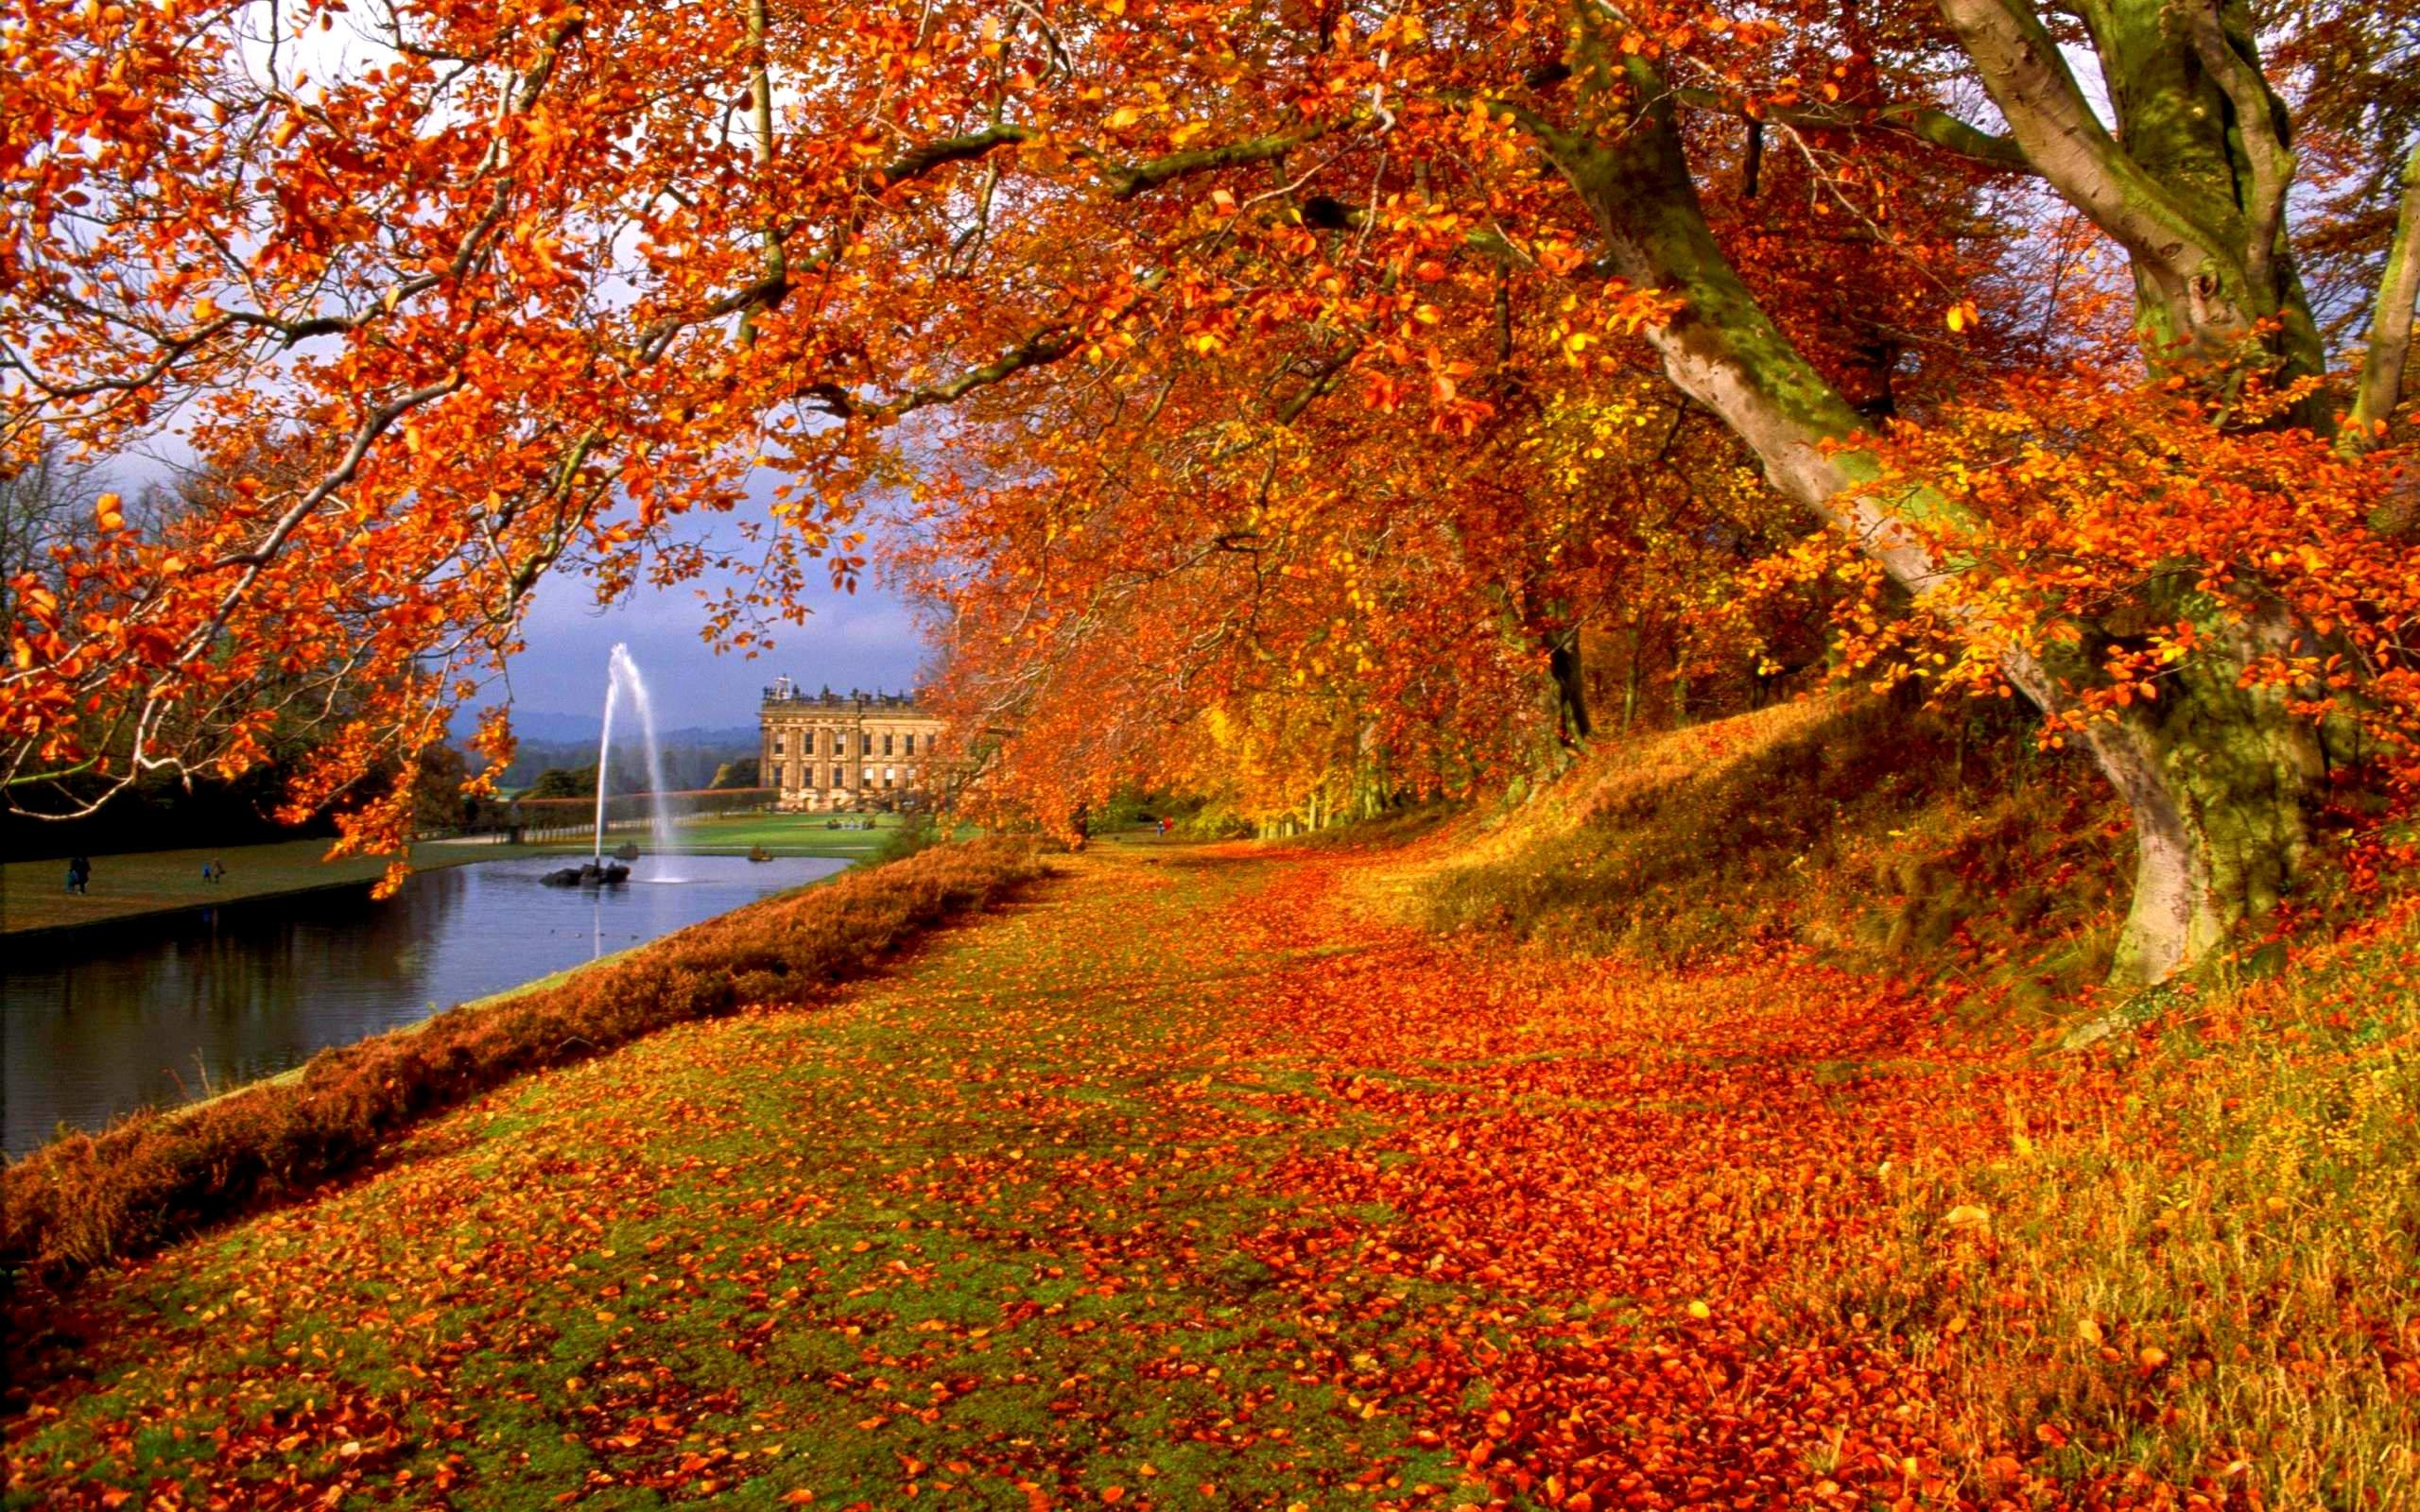 Screensavers and wallpaper autumn scene 53 images - Pics of fall scenes ...